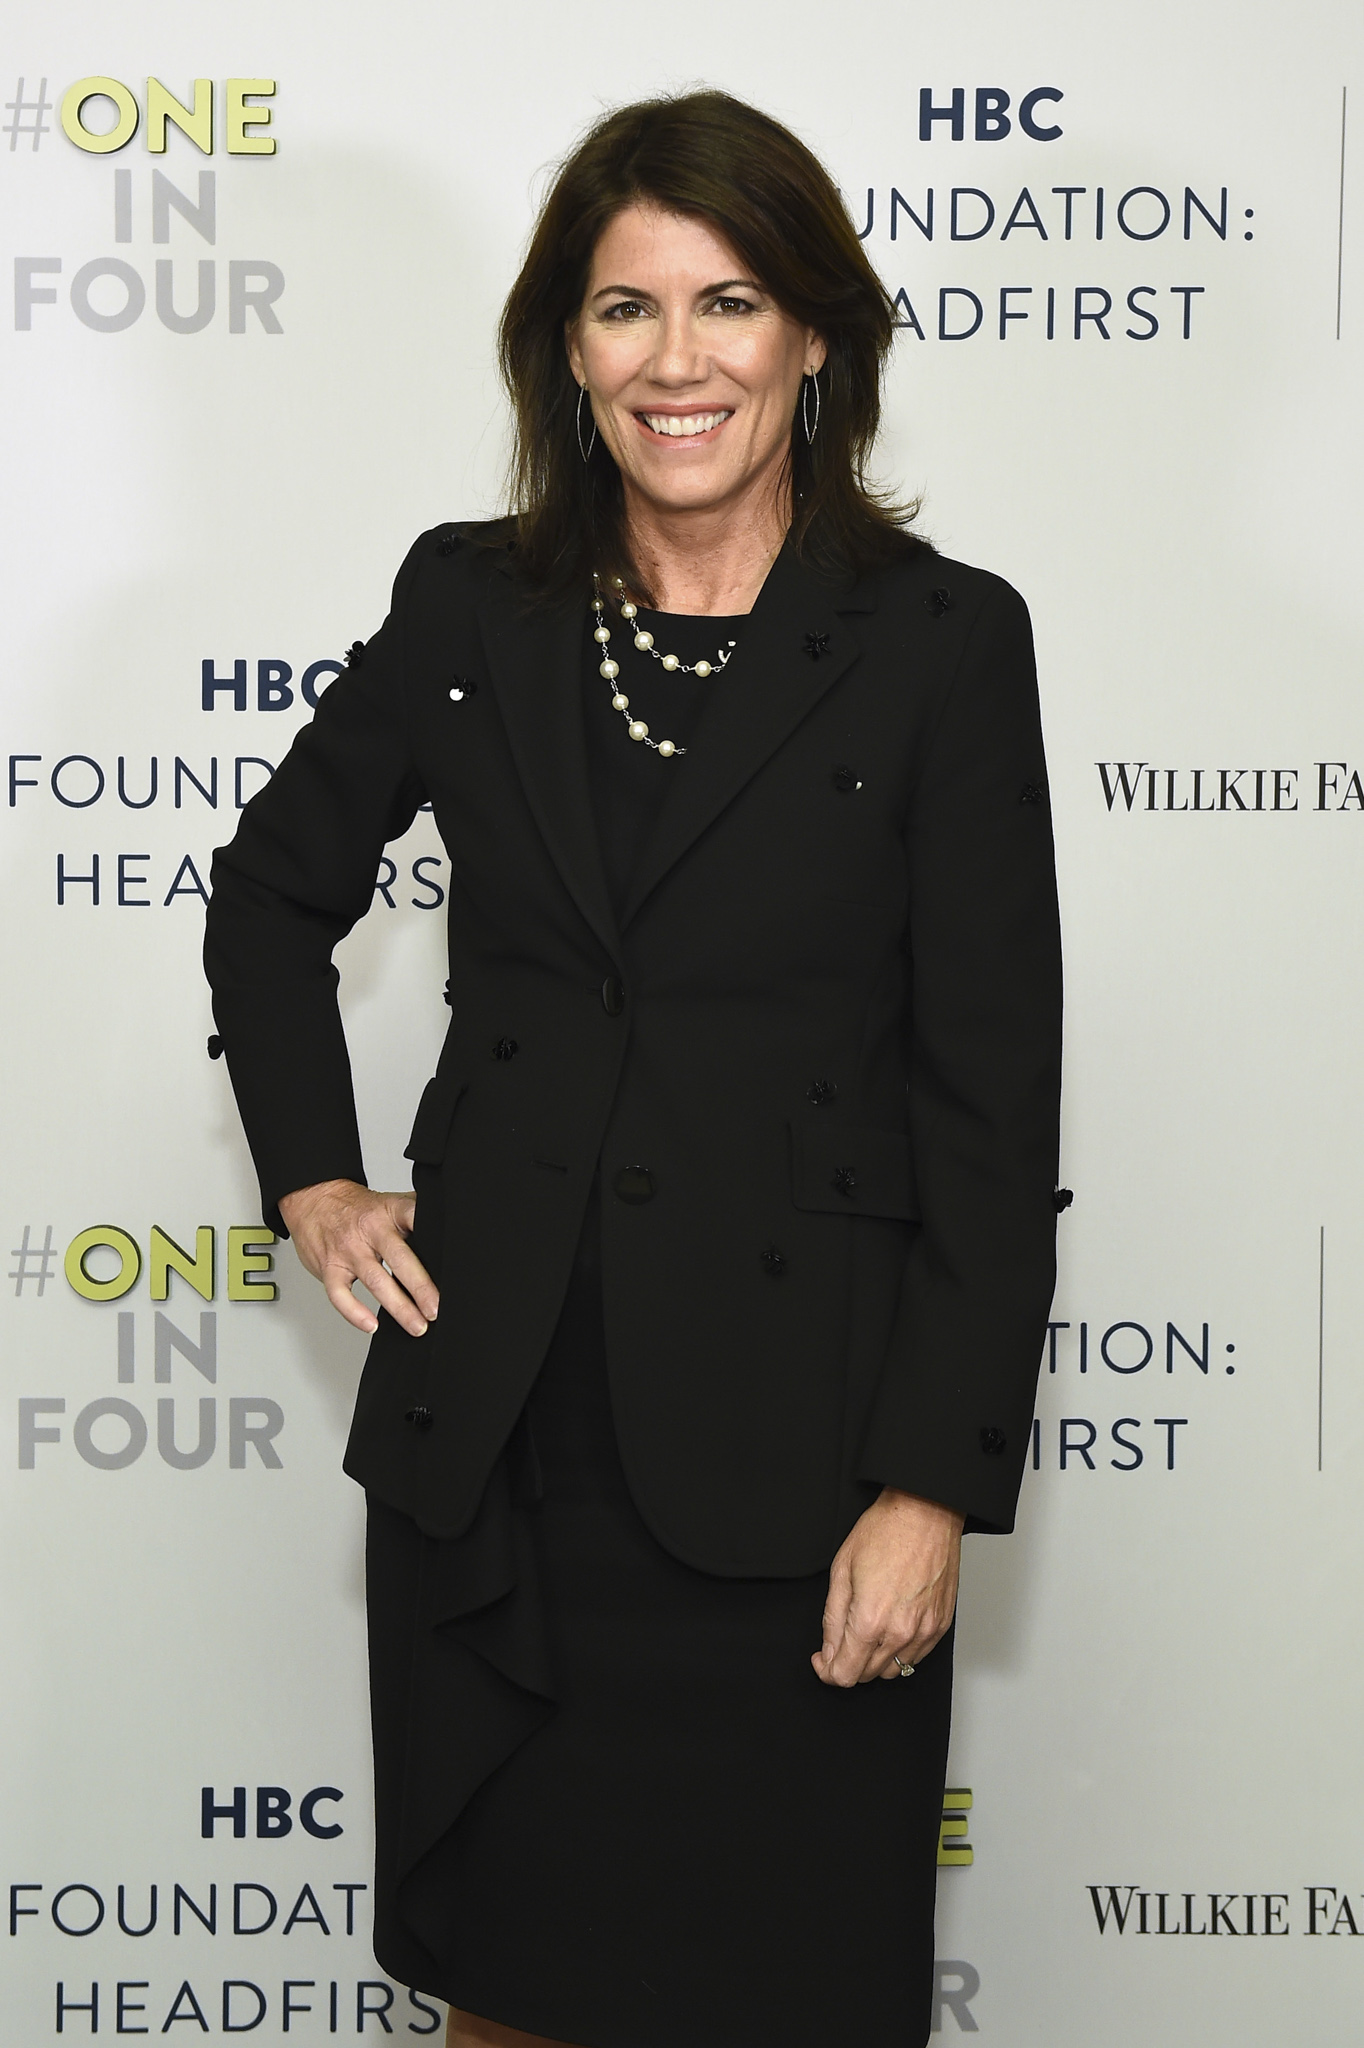 Helena Foulkes at HBC Foundation Fundraiser